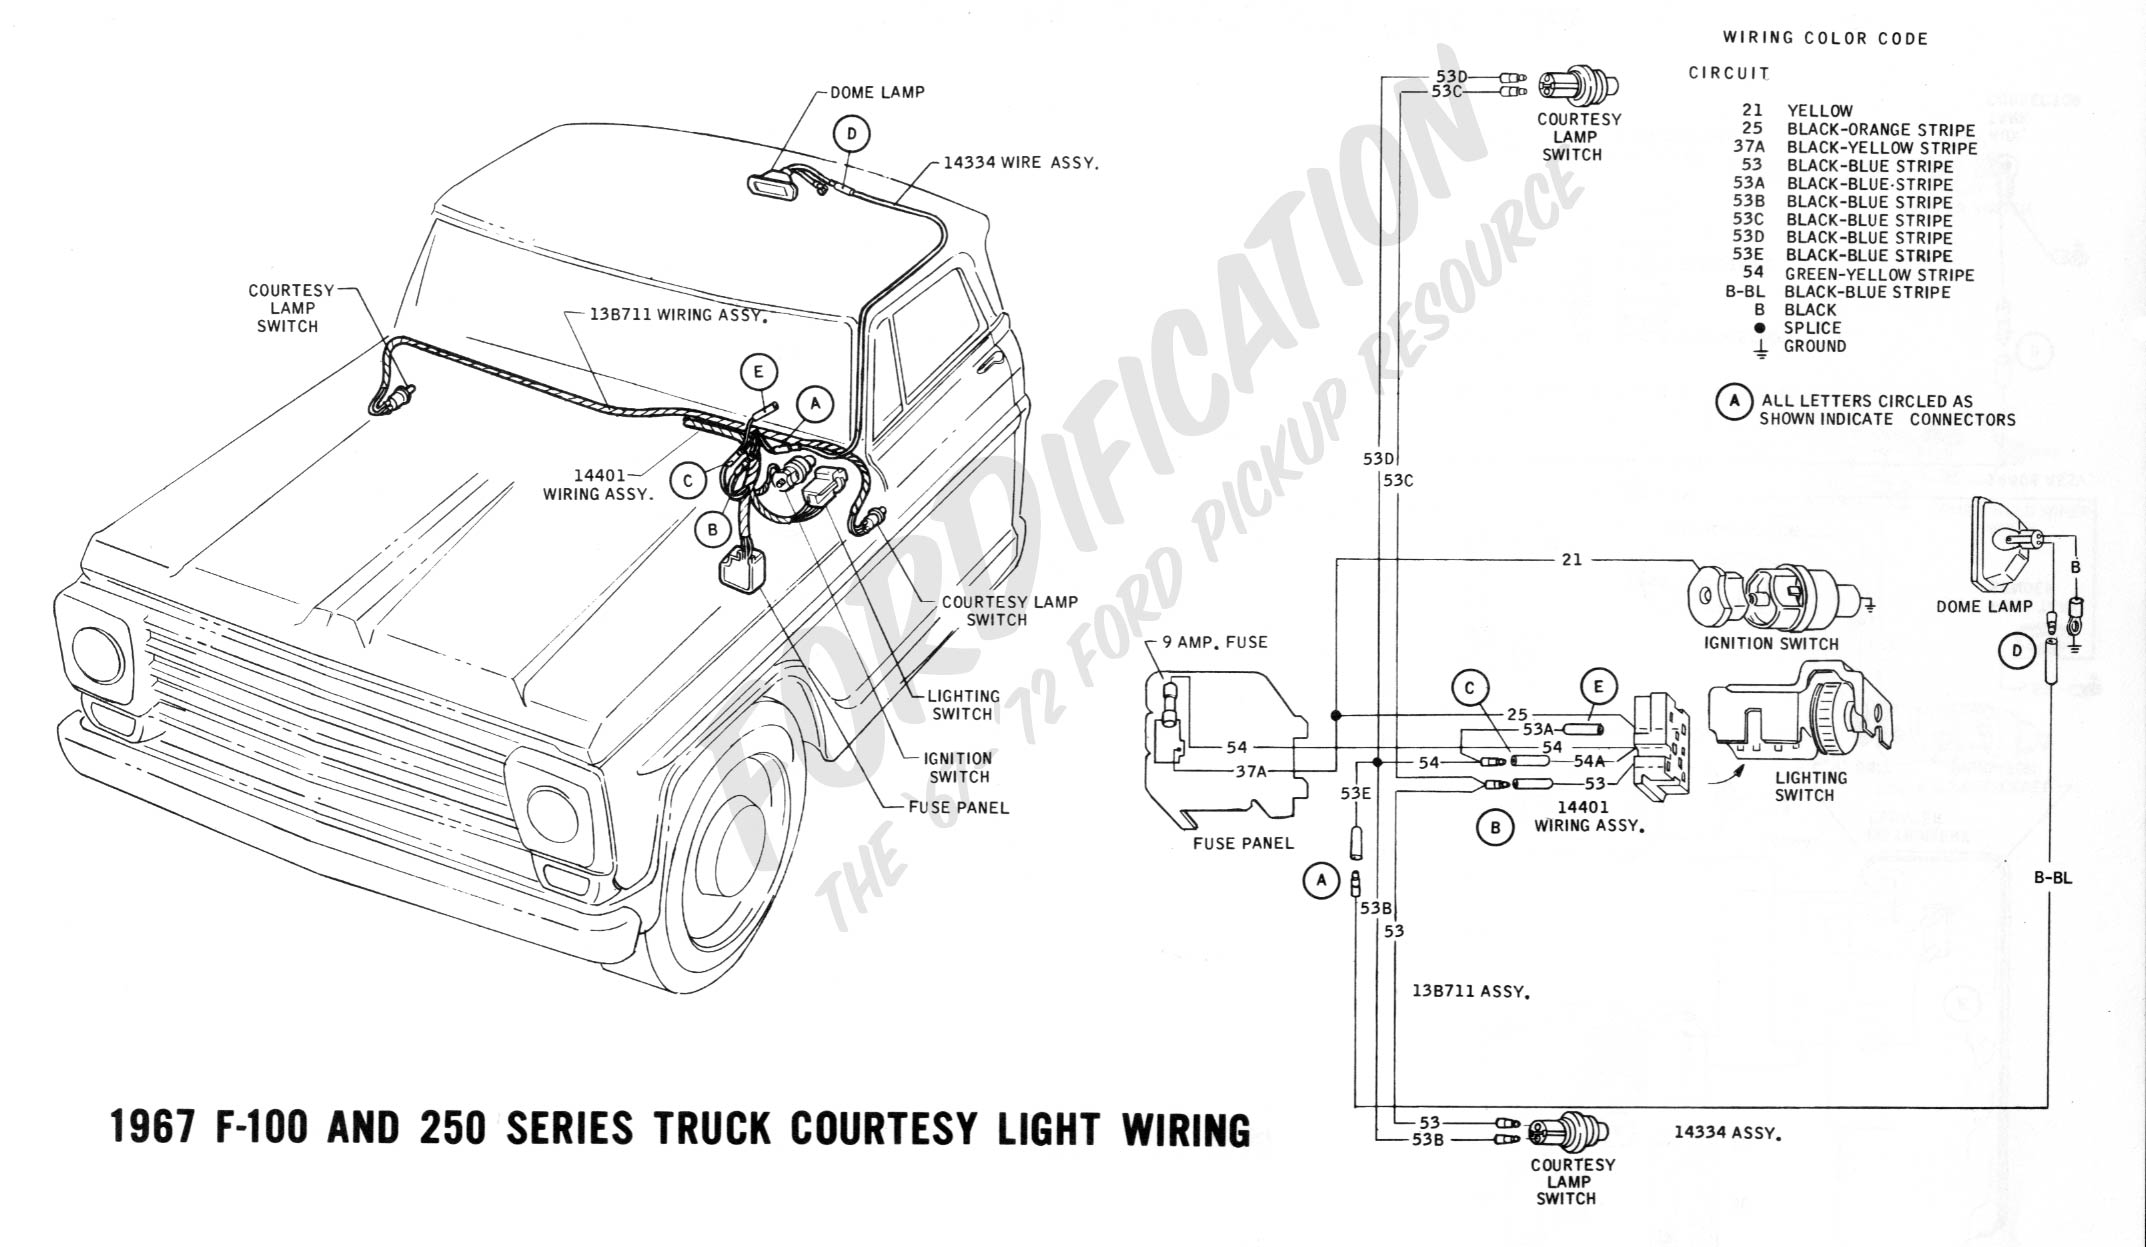 Dimmer Switch Wiring Diagram 70 Ford Pickup Trusted Diagrams Sw Truck Technical Drawings And Schematics Section H Neutral Safety 1967